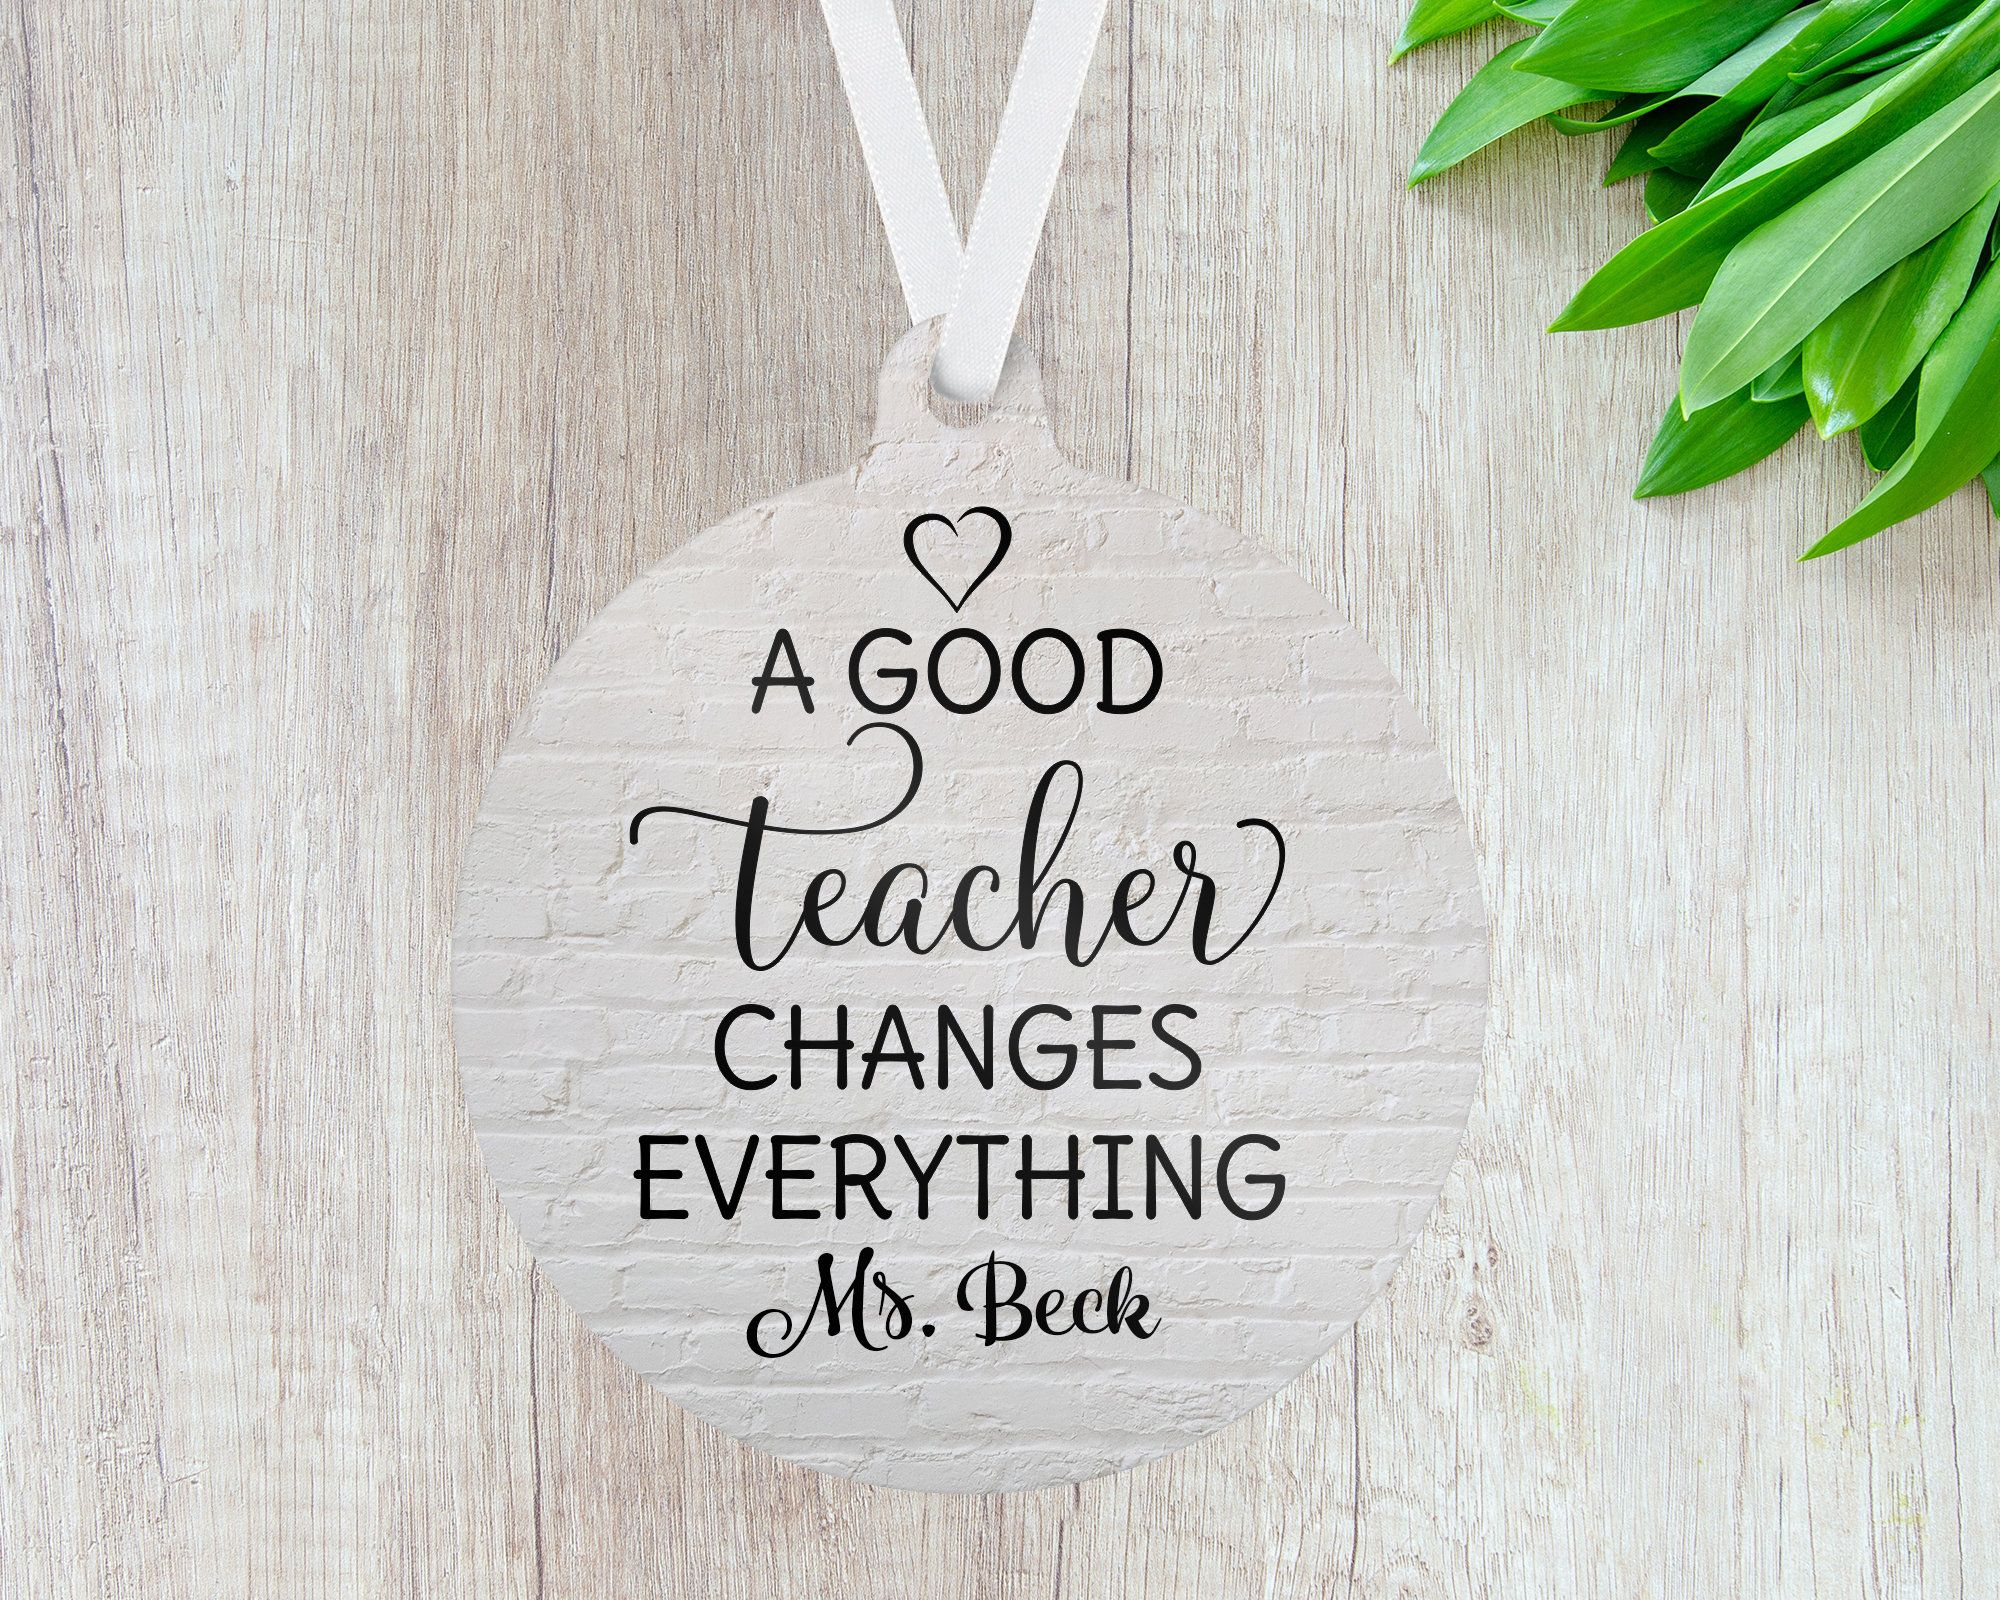 Personalized Teacher Ornament; A Good Teacher Changes Everything